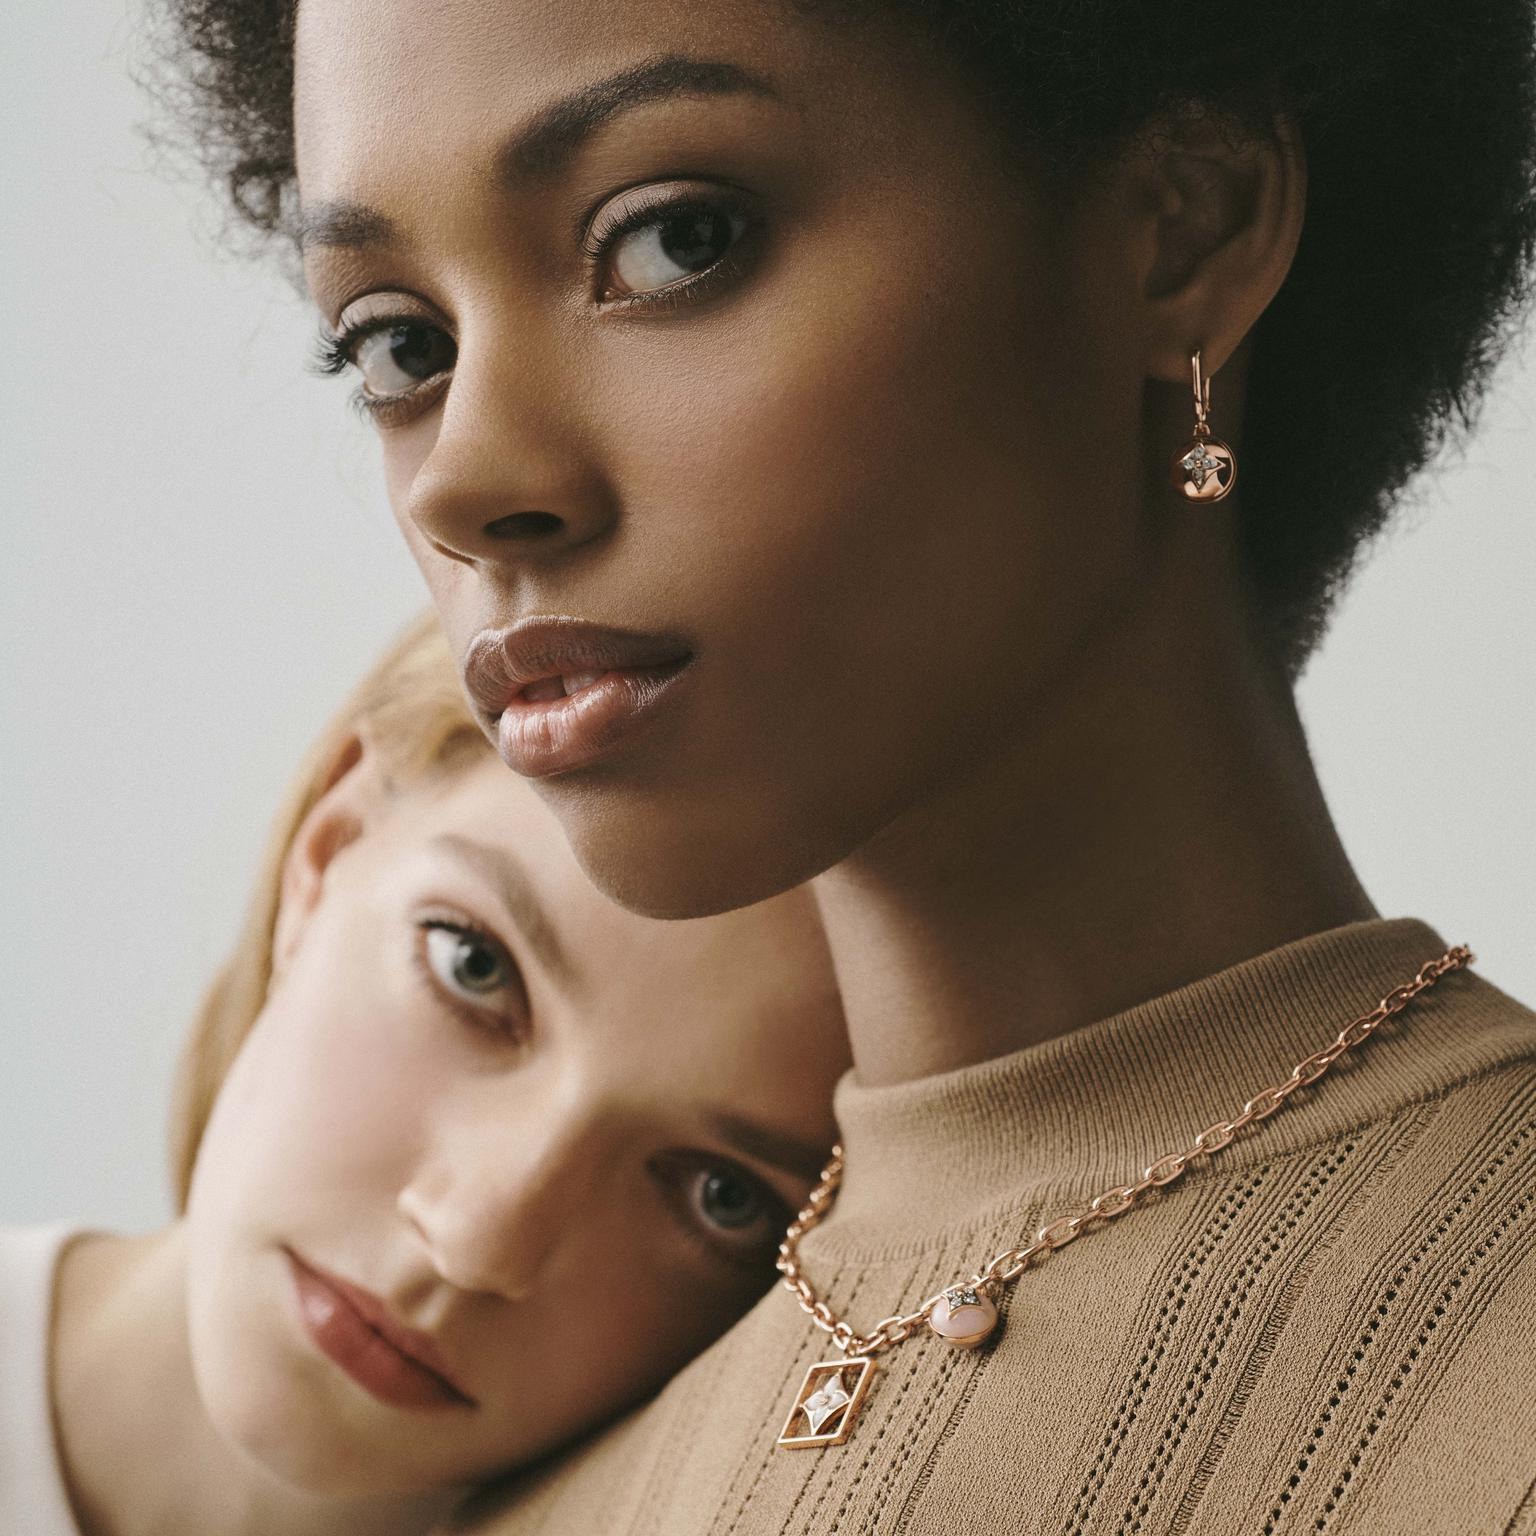 Louis Vuitton B.Blossom necklace and earrings on models